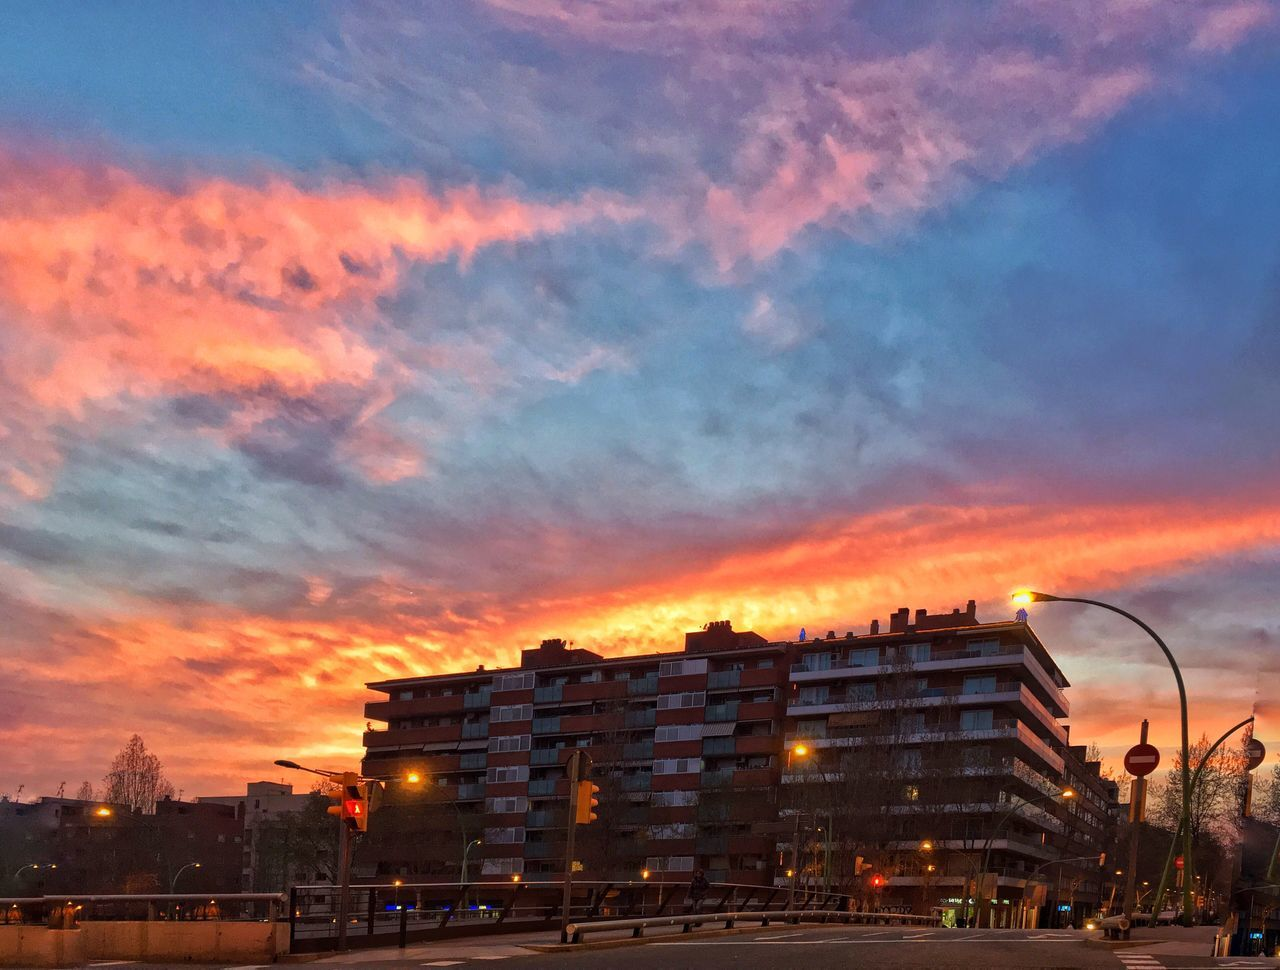 architecture, building exterior, built structure, sunset, sky, cloud - sky, city, outdoors, city life, cityscape, illuminated, residential building, no people, nature, day